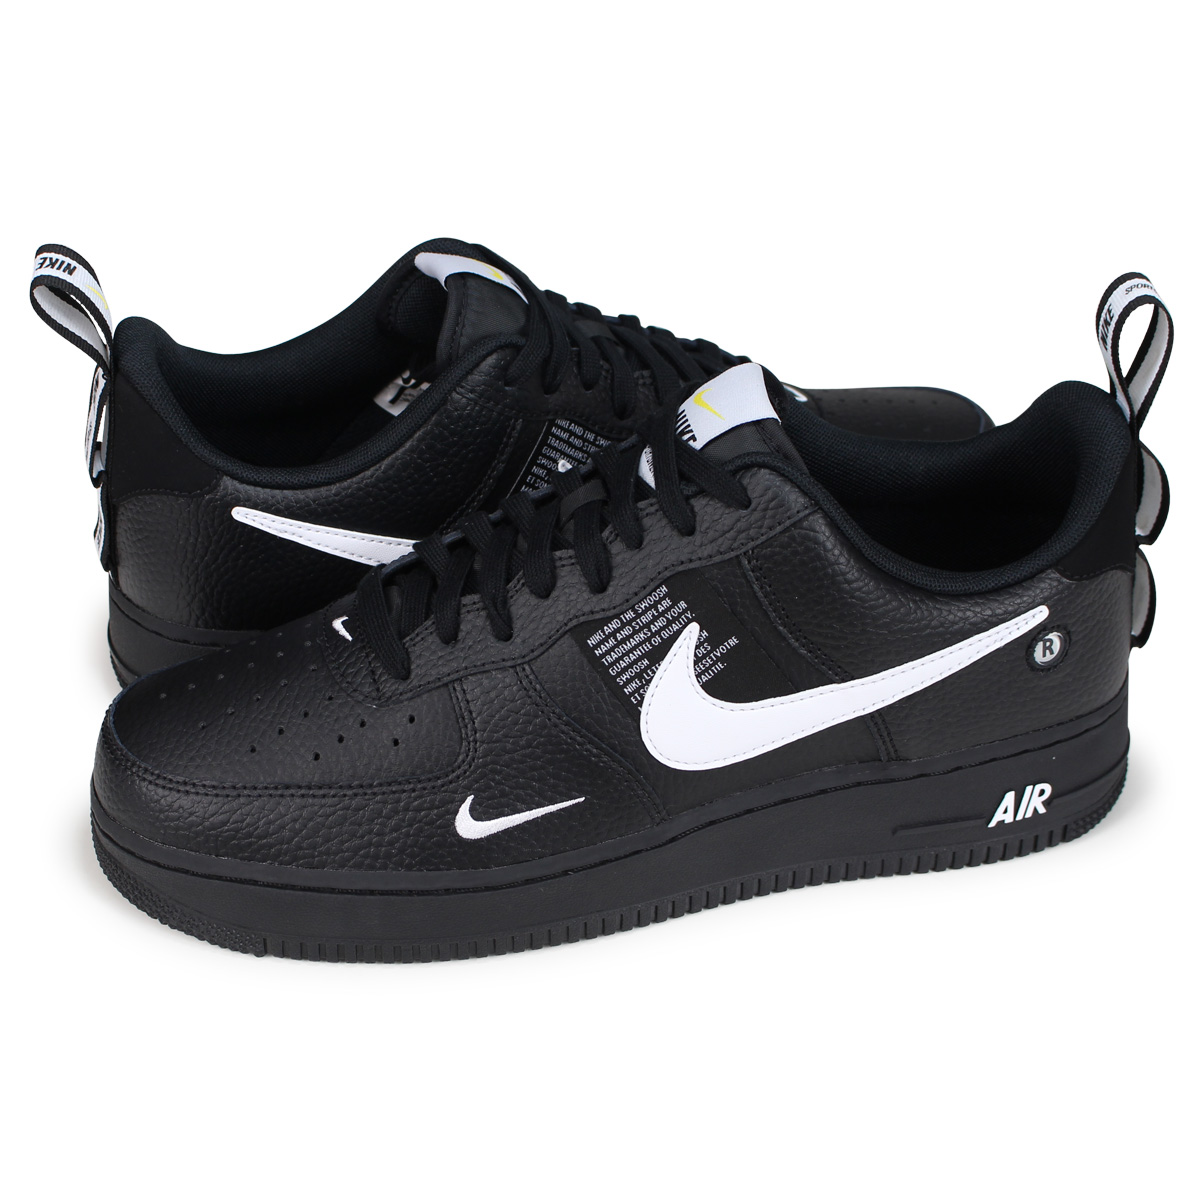 NIKE AIR FORCE 1 07 LV8 UTILITY Nike air force 1 sneakers men AJ7747 001 black [load planned Shinnyu load in reservation product 1015 containing]